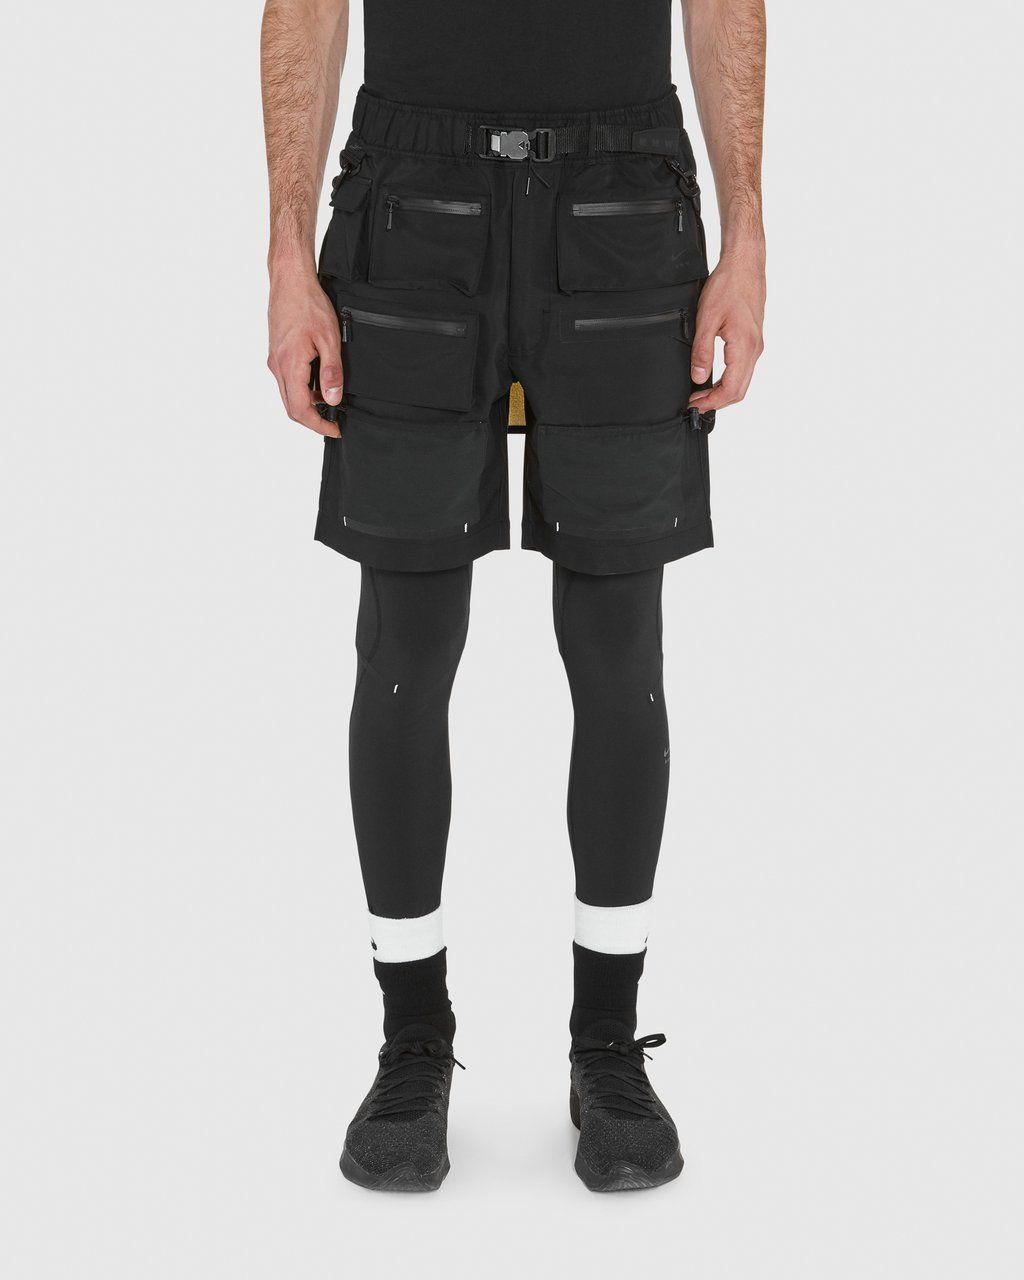 c869e1b489e19 AA-3-25-0010 NIKE x MMW Hybrid Short With Tight in 2019 | Goods ...